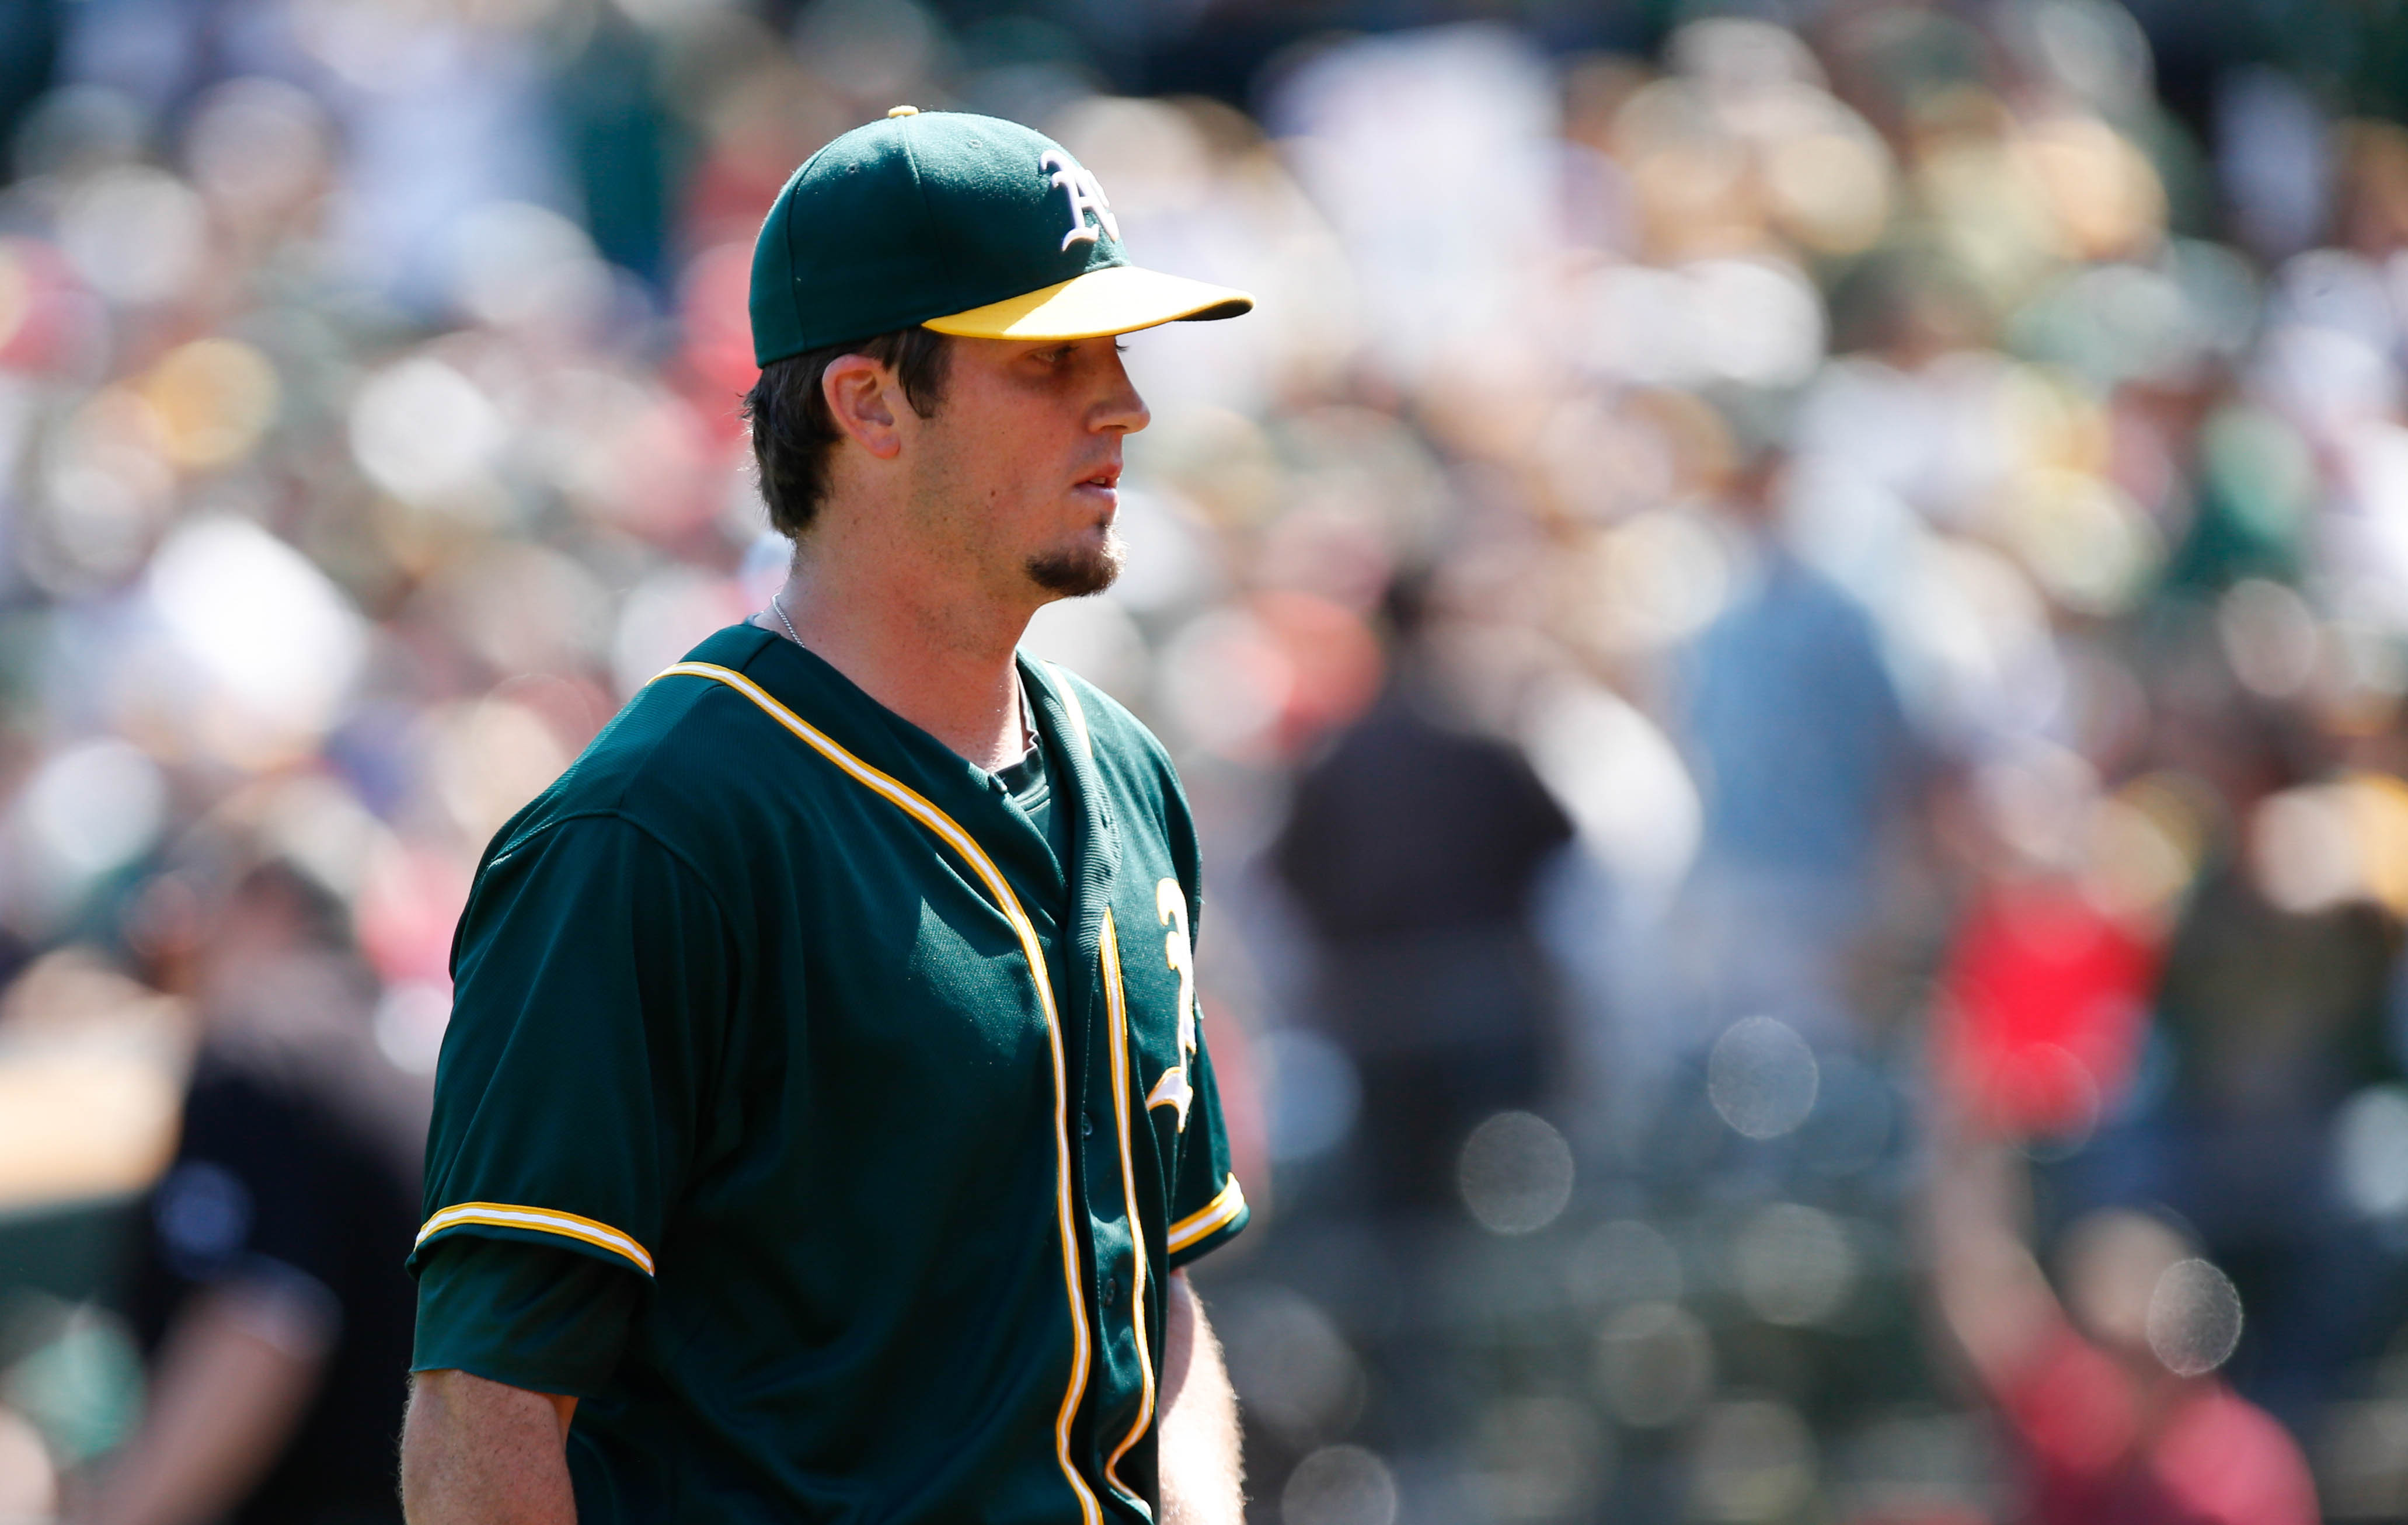 If the A's want to send down Drew Pomeranz to gain another year of control, then why the hell shouldn't they?